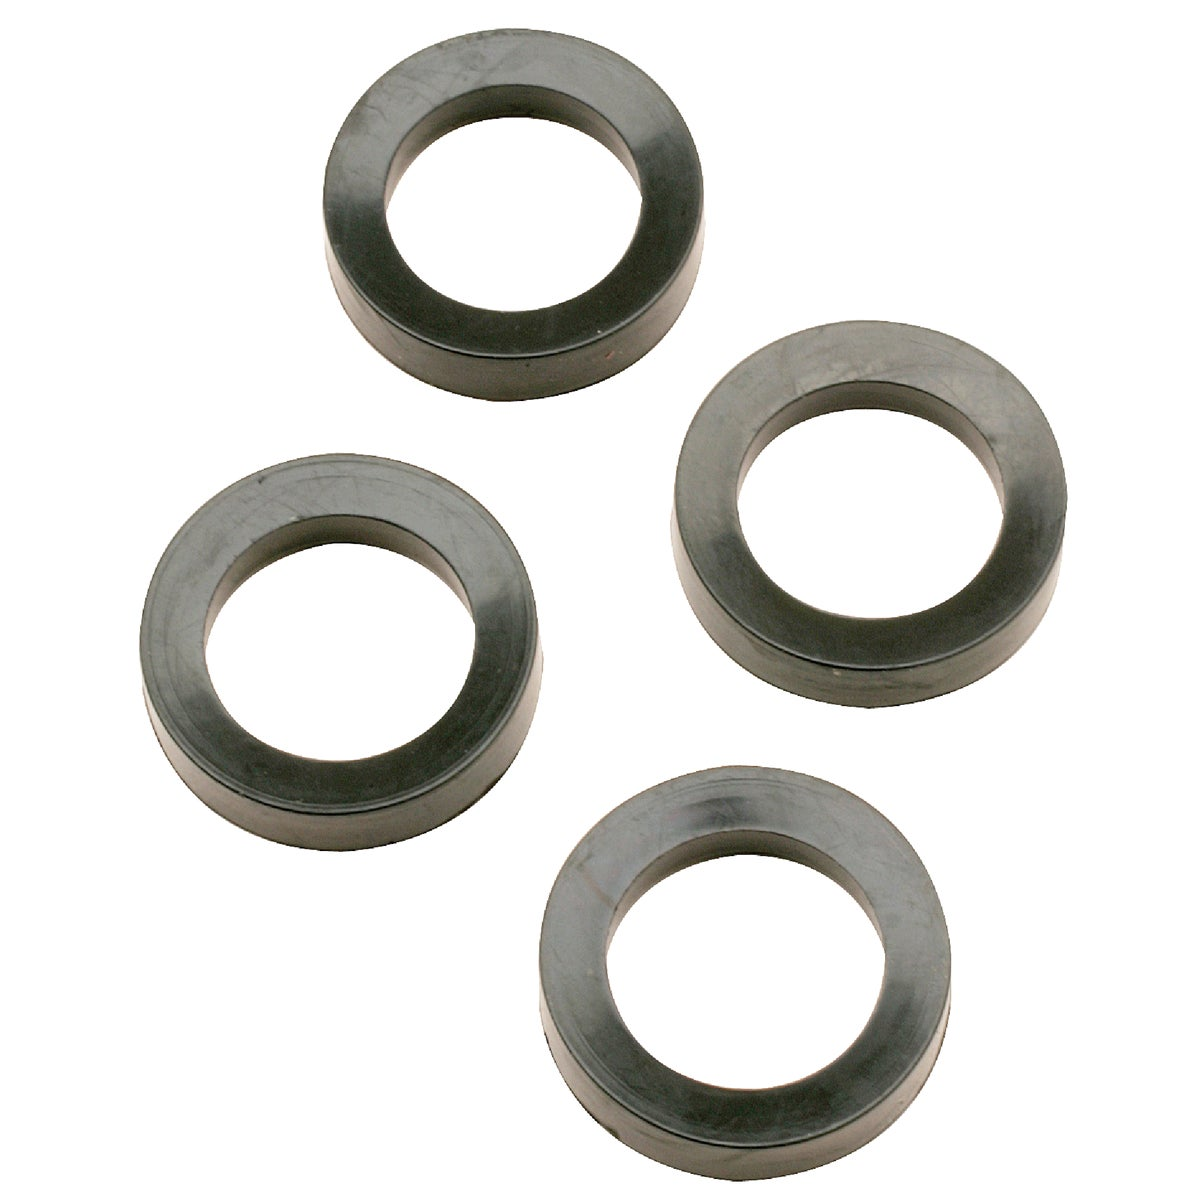 WATER CONNECTION WASHERS - 443816 by Plumb Pak/keeney Mfg